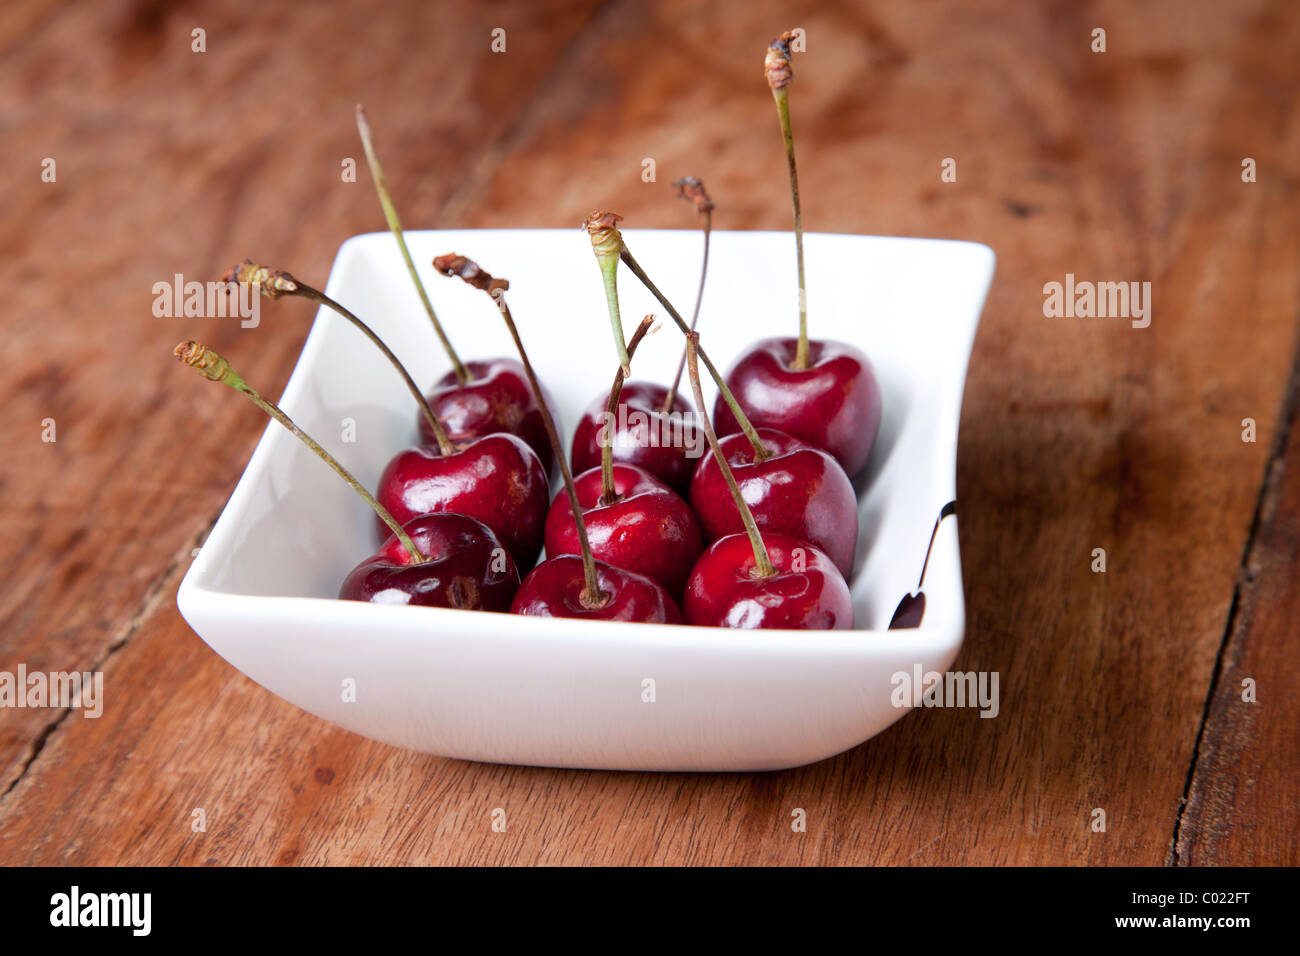 Cherries in bowl on wooden table - Stock Image